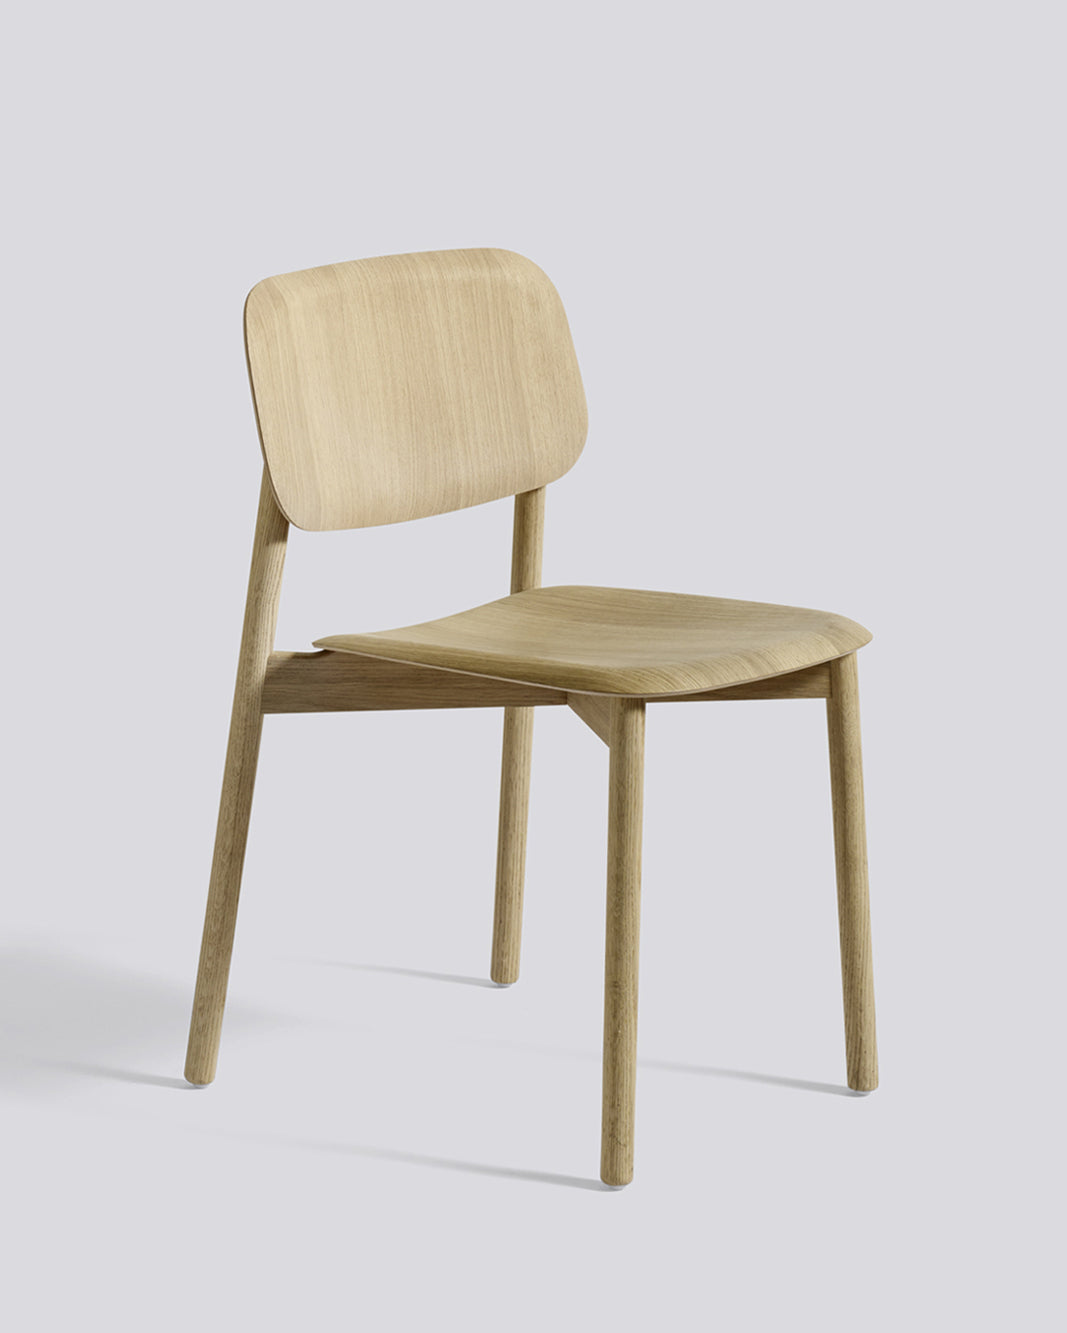 Silla Soft Edge 12 | Soft Edge 12 Chair - Samtida